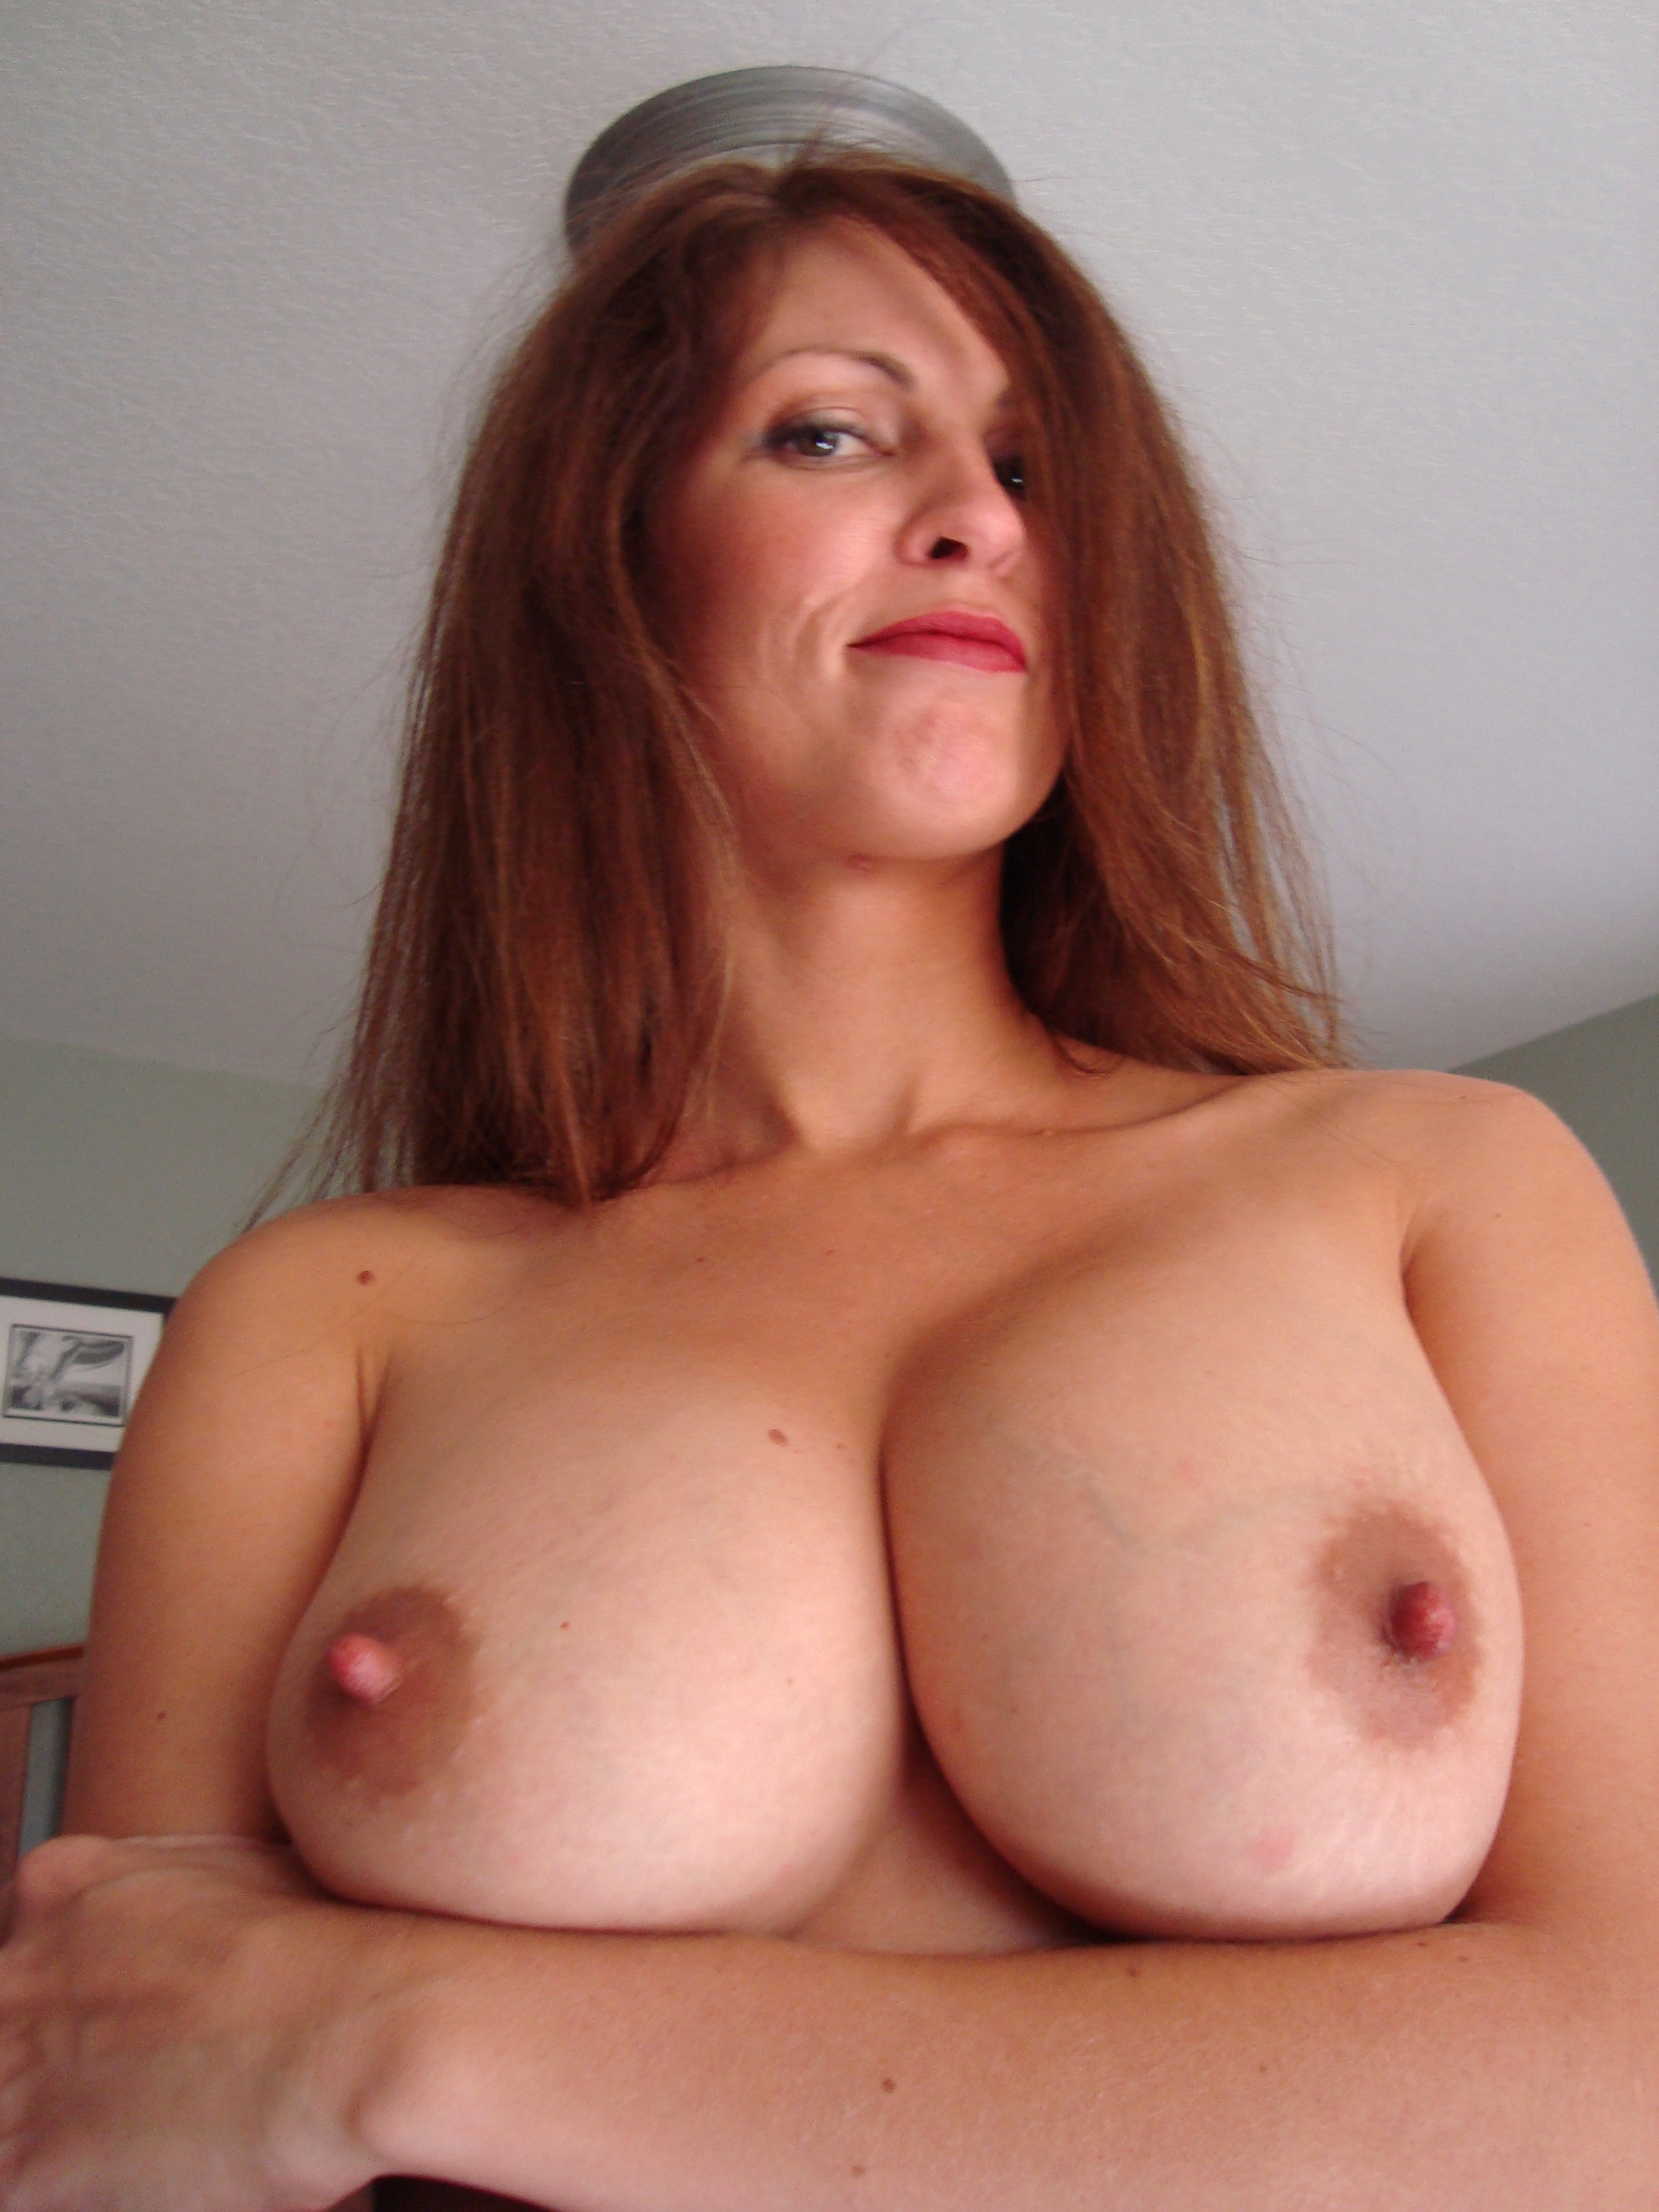 Big Natural Breasts 4 Scene 2